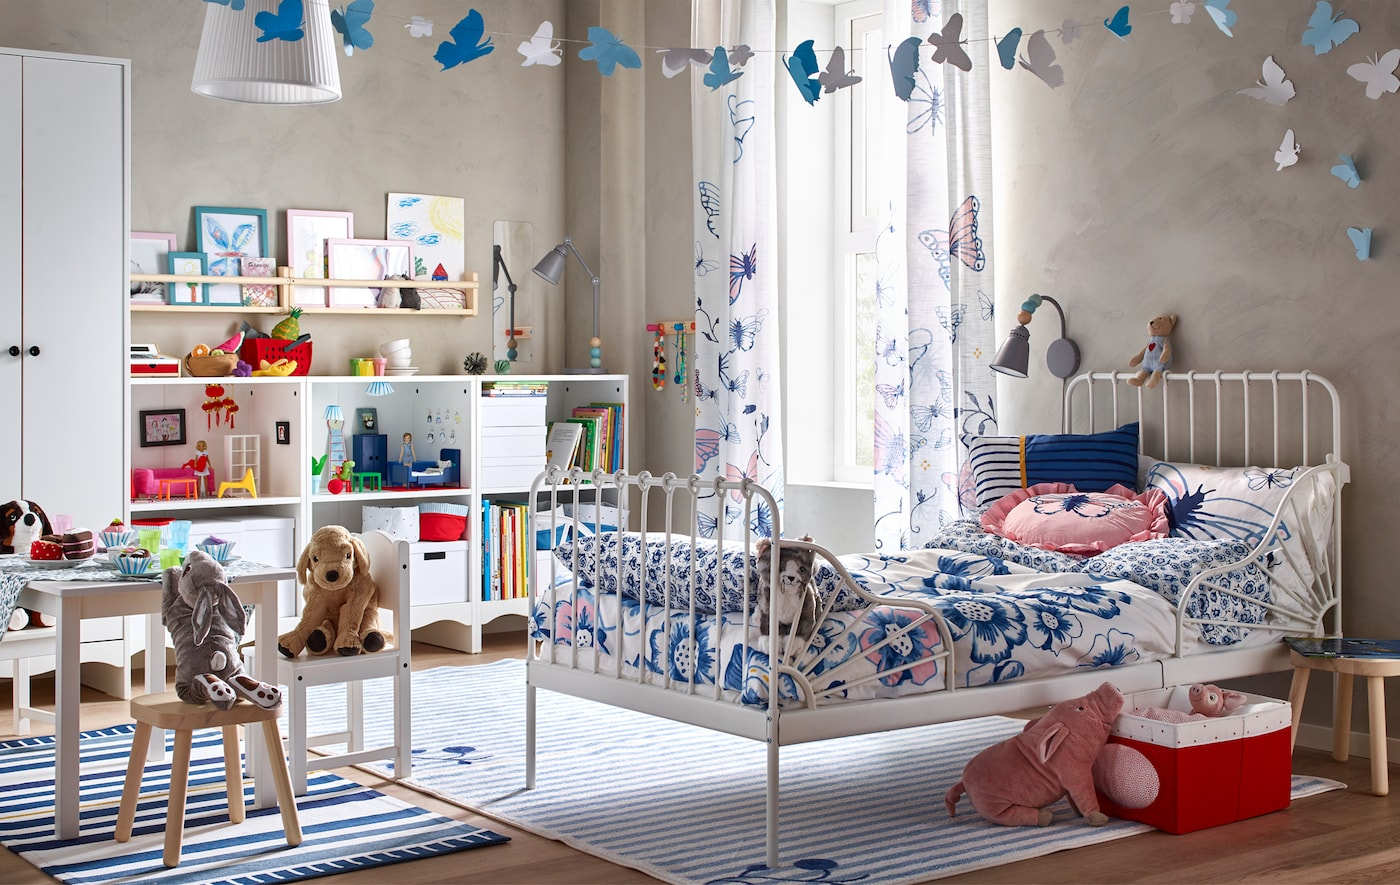 Ideas For A Playful Kid S Room Full Of Storage Ikea